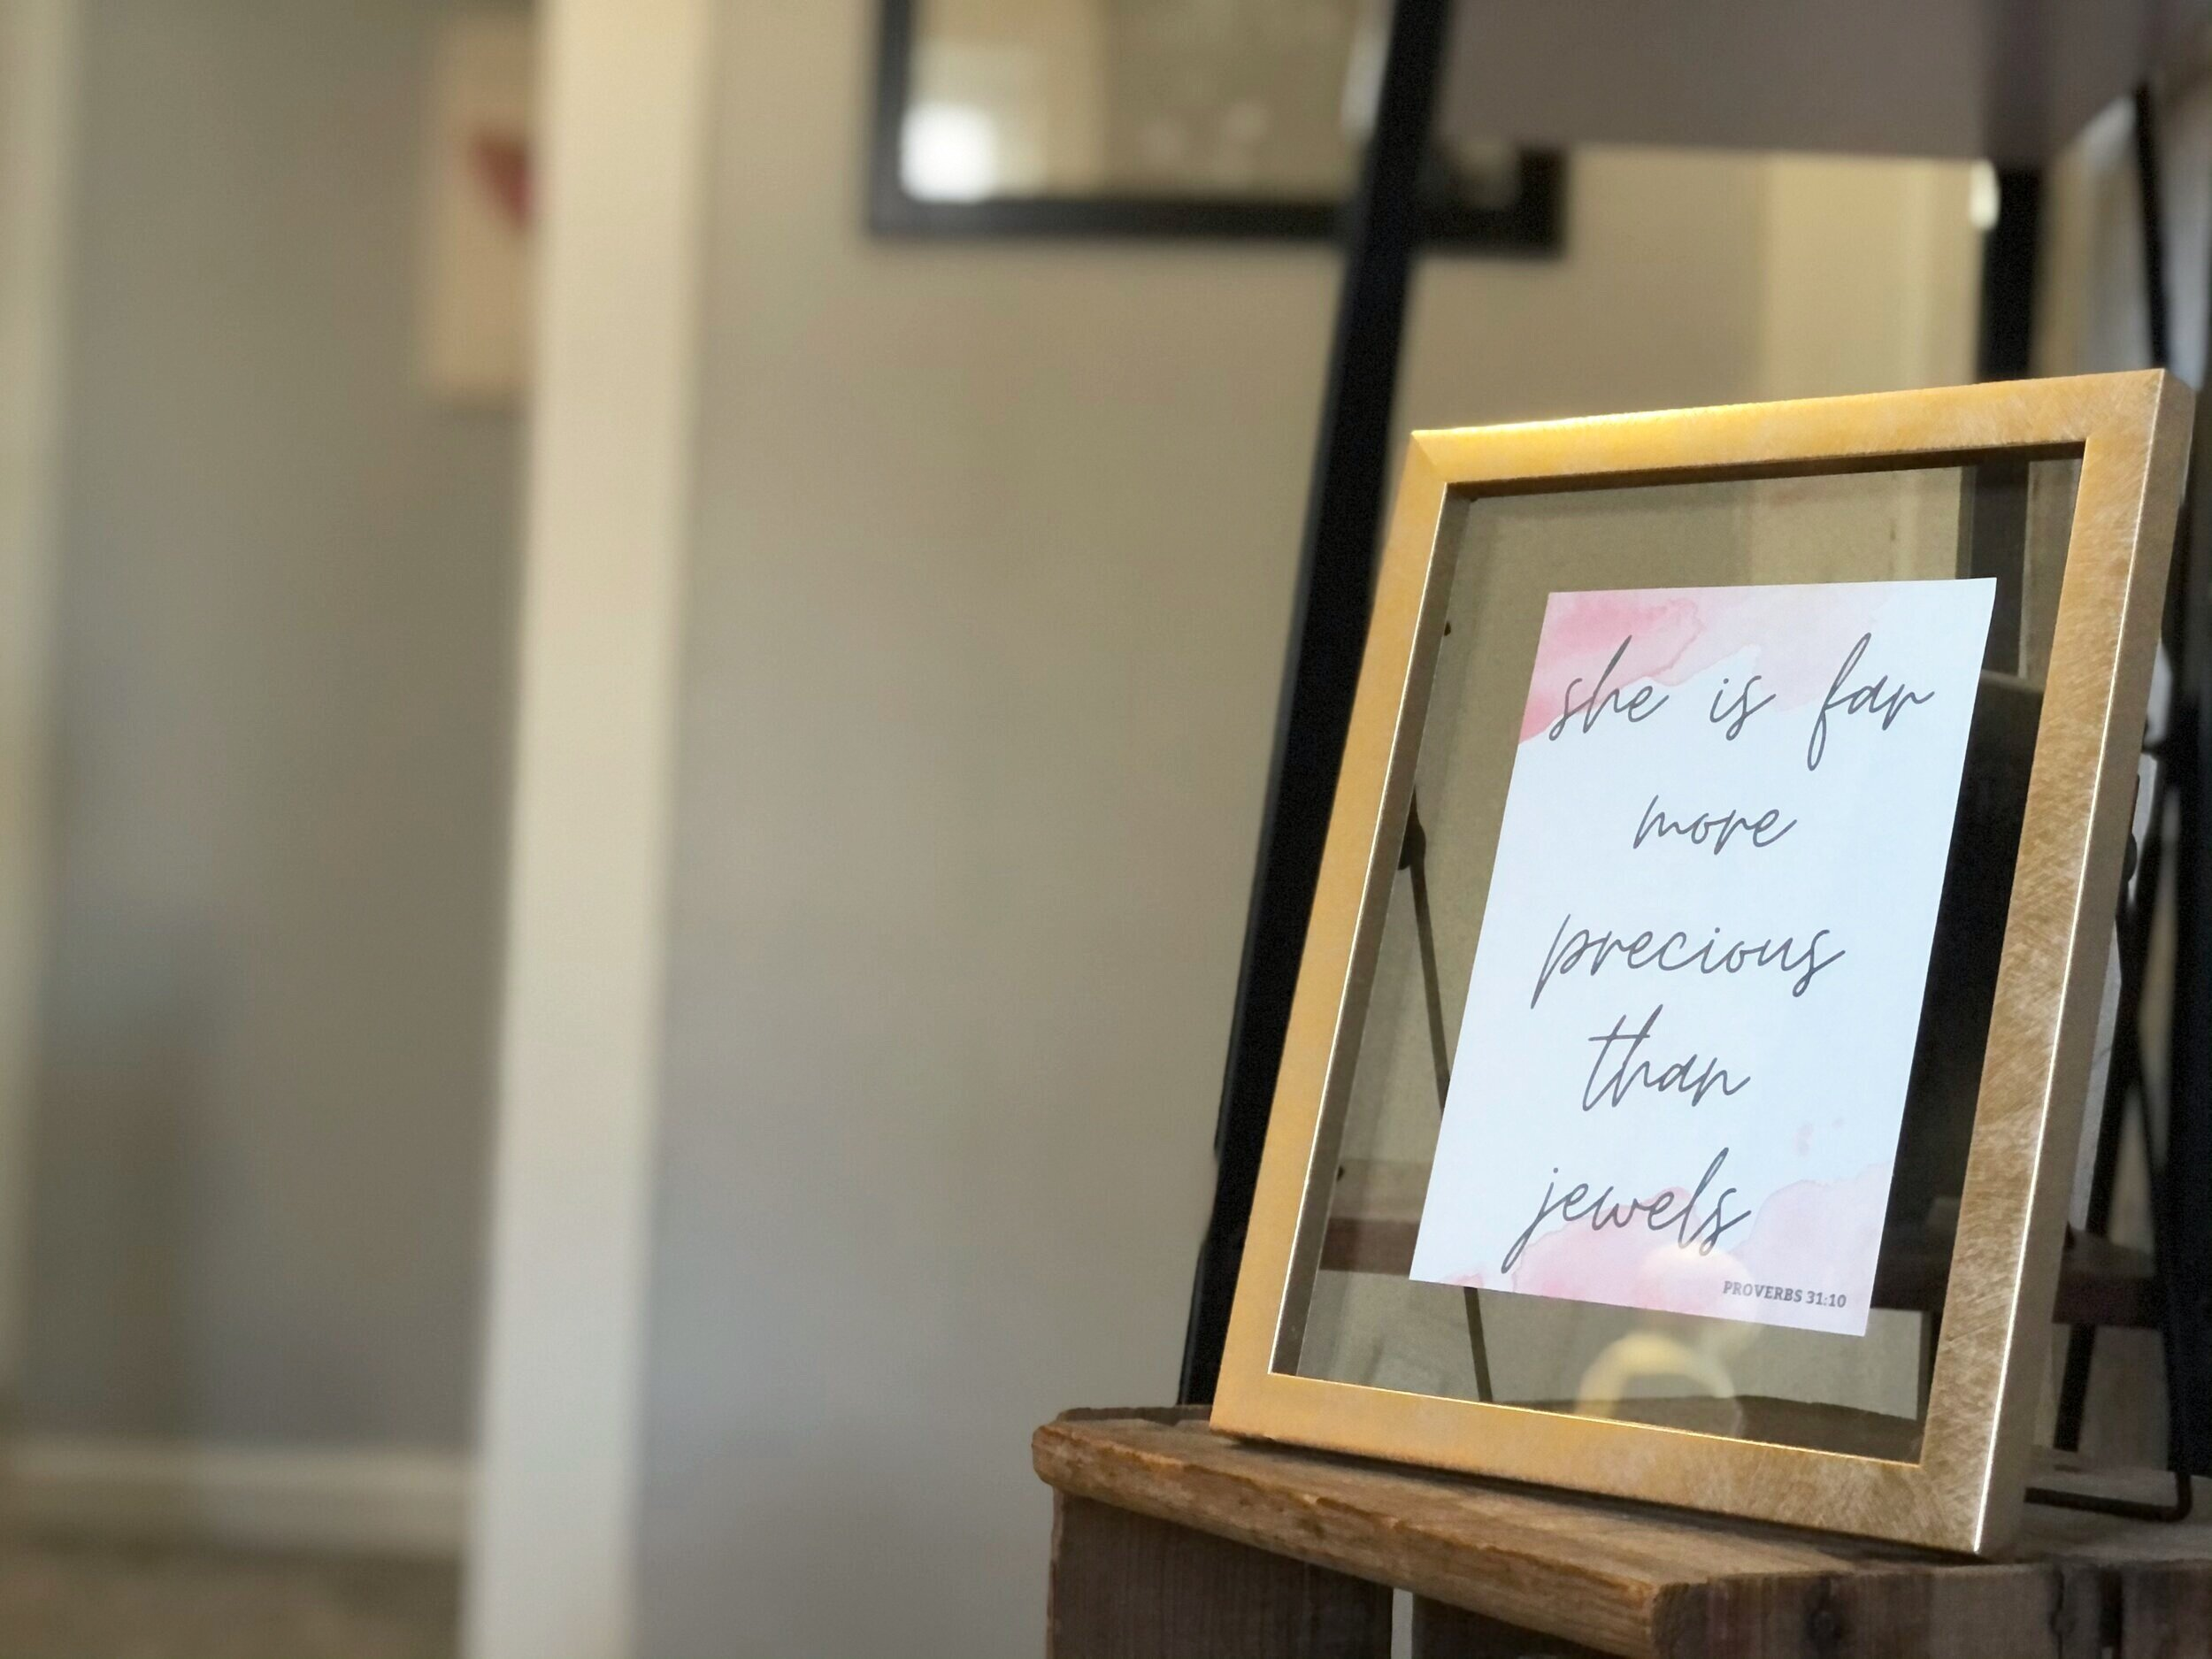 Gold picture from with a watercolor print out of she is far more precious than jewels bible verse. Pink and blush colored watercolor marks